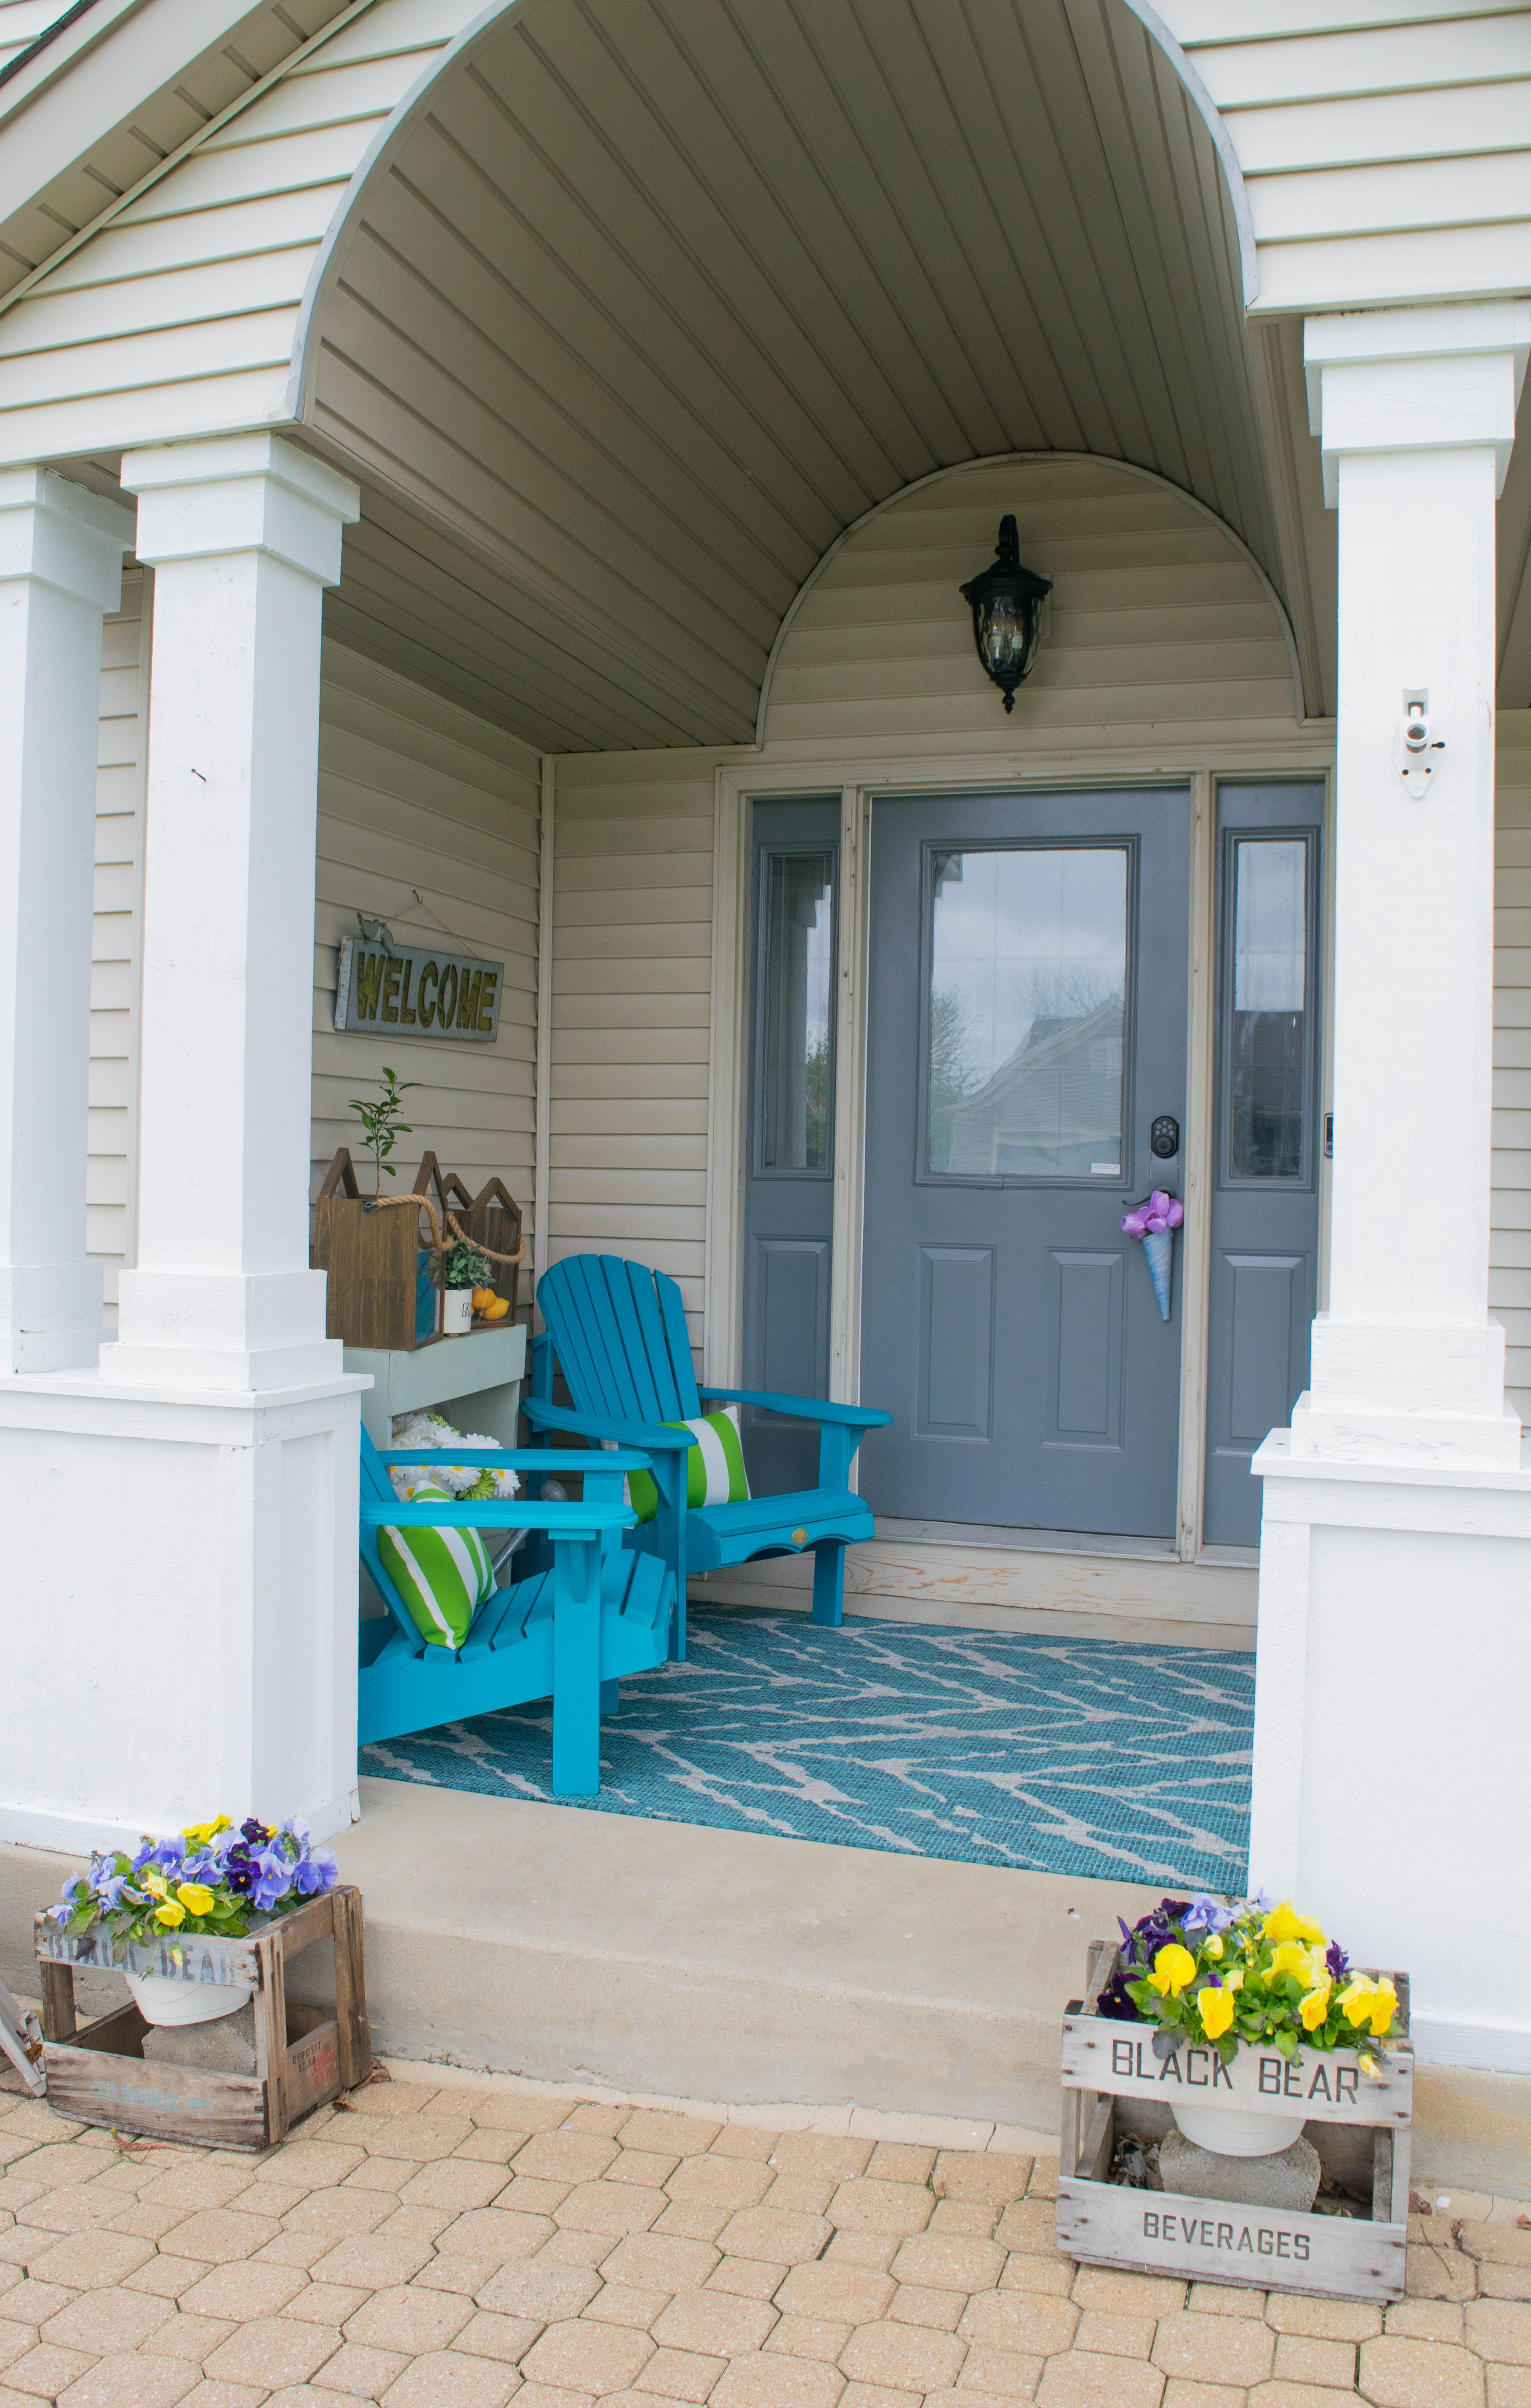 Front Porch Decorating Ideas With The Perfect Adirondack Chairs Our House Now A Home: Front Porch Decorating Ideas With The Perfect Adirondack Chairs